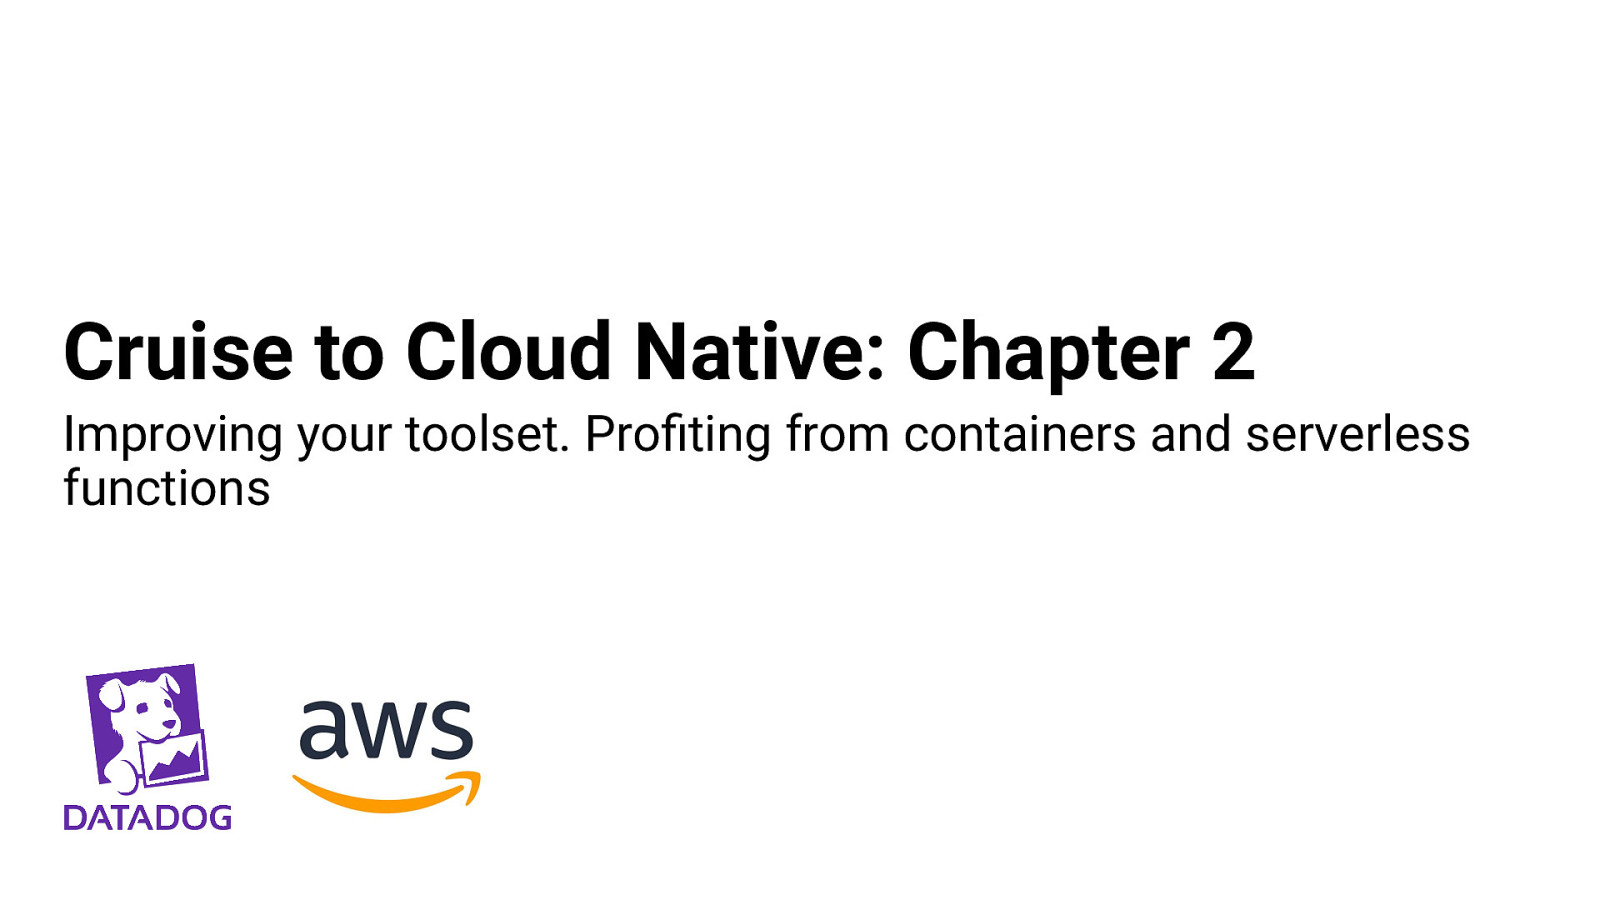 Cruise to Cloud Native: Chapter 2. Improving your toolset. Profiting from containers and serverless functions.